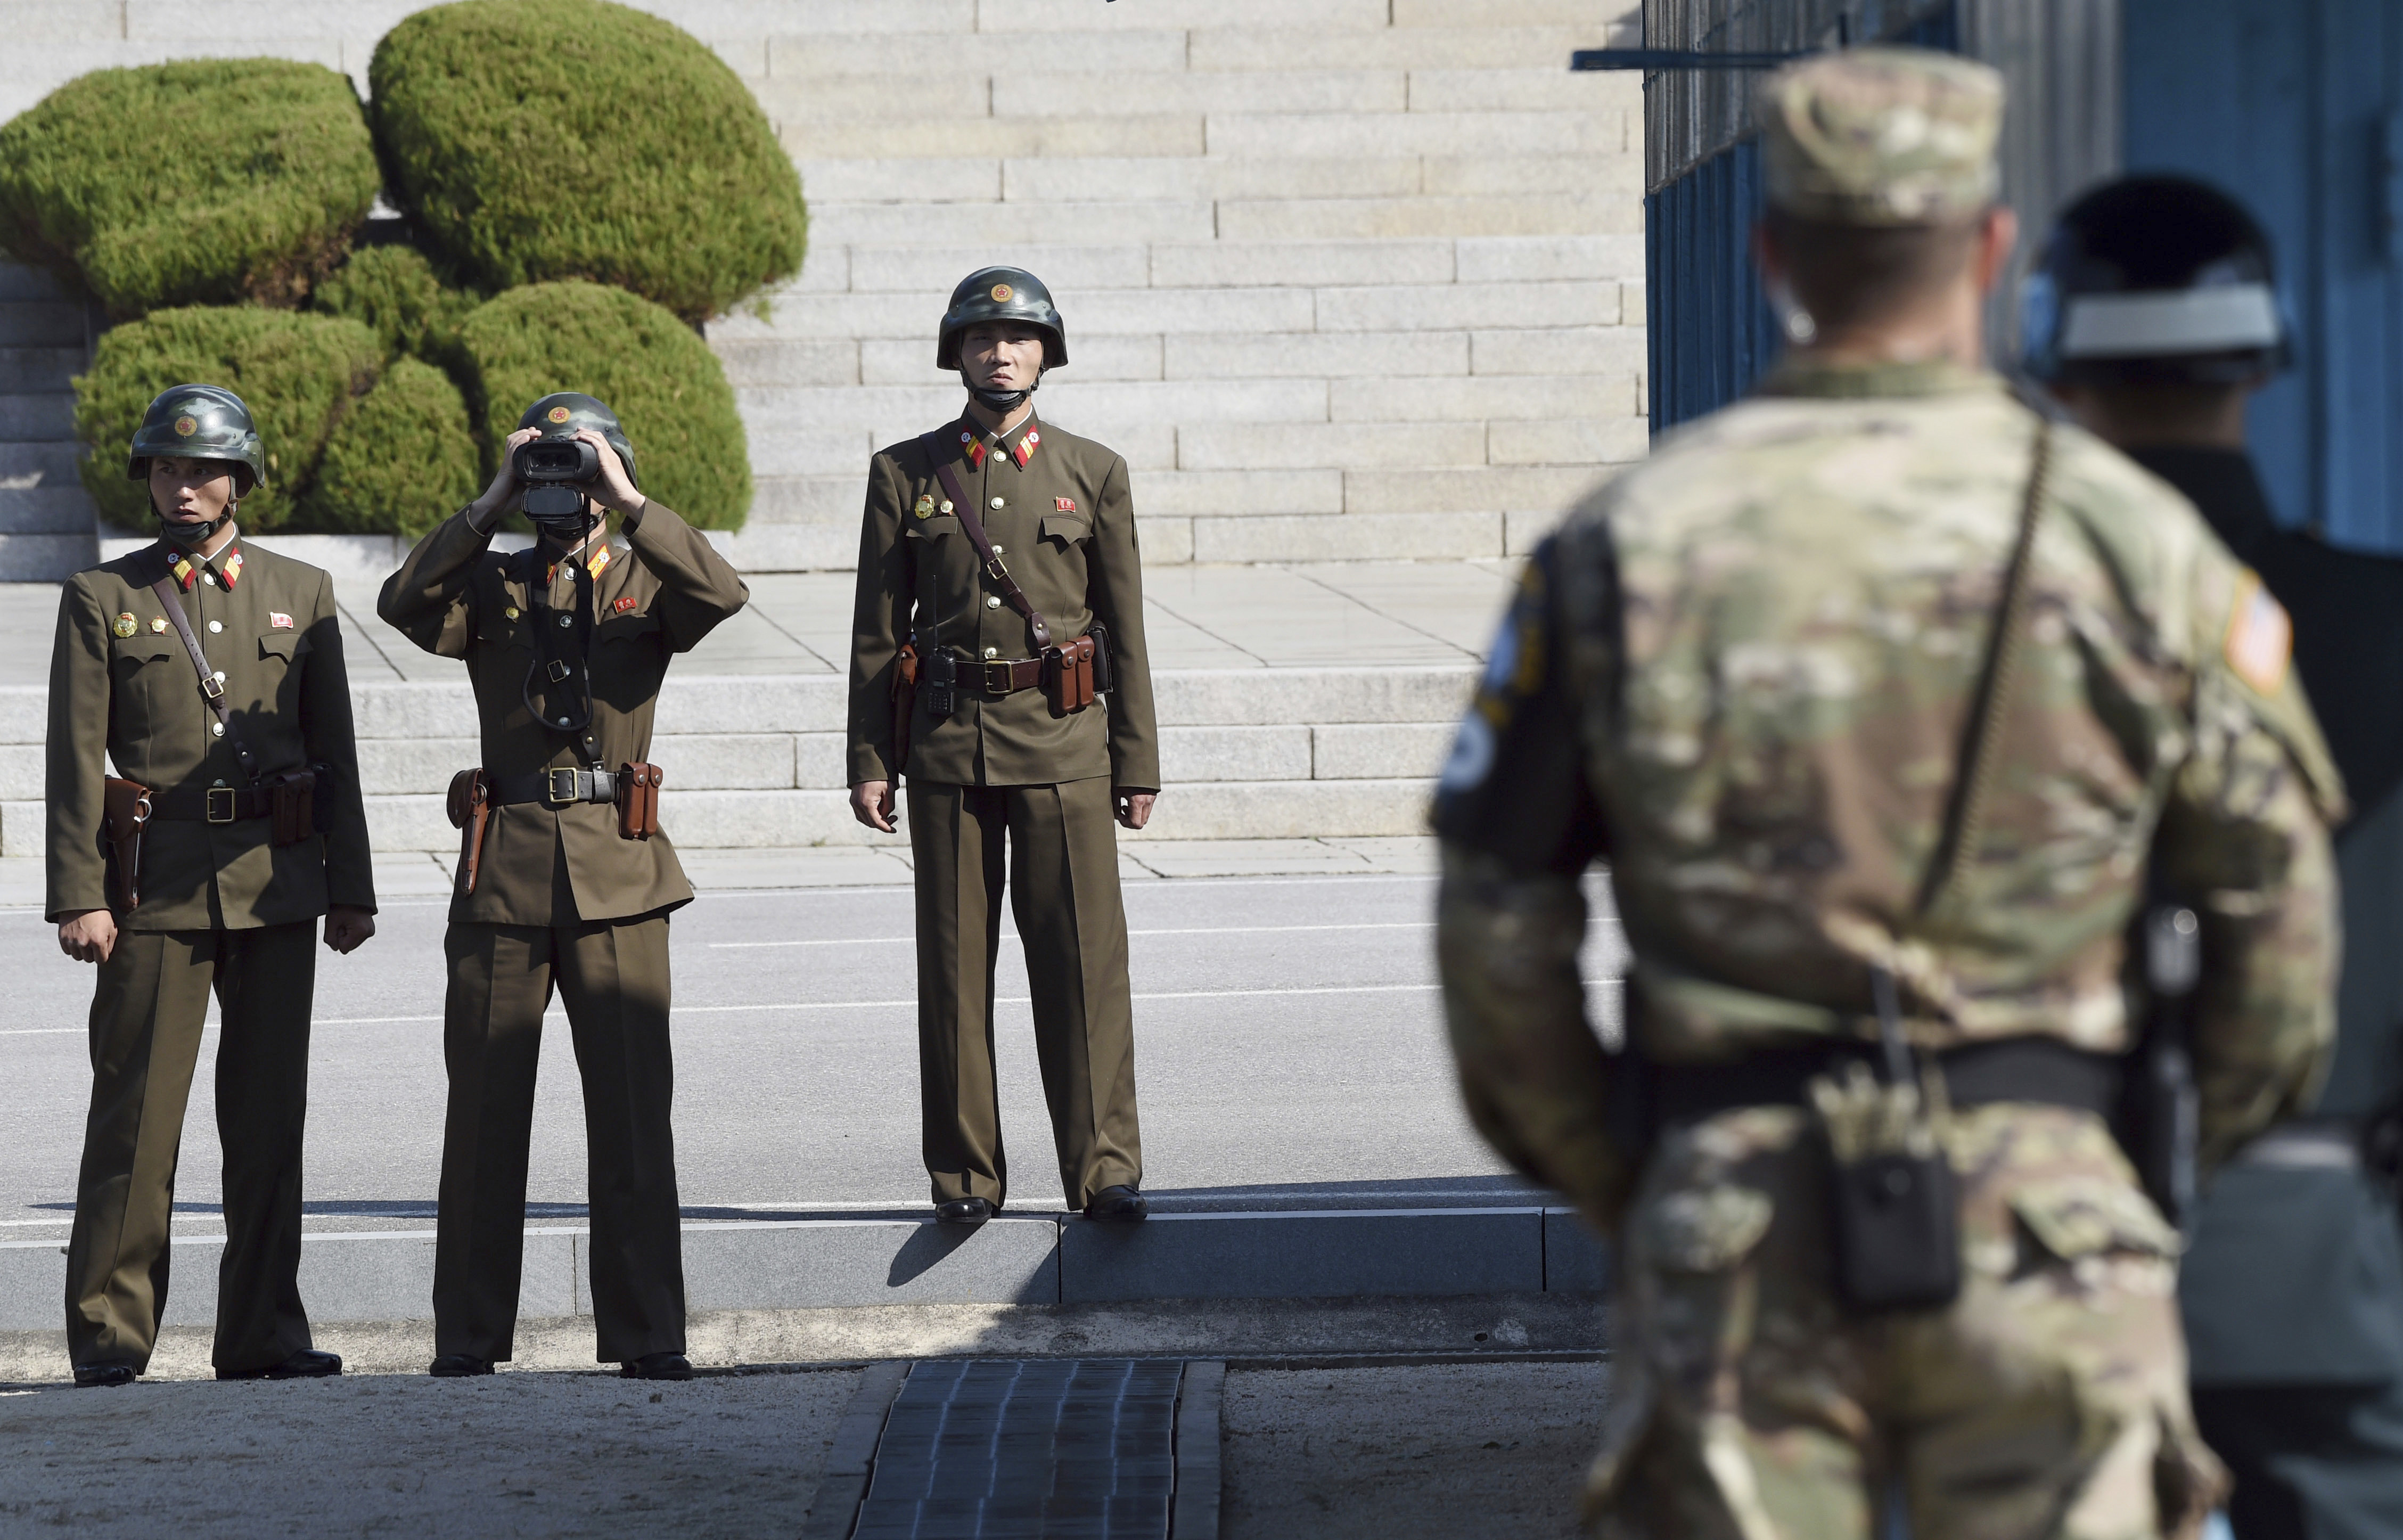 North Korean soldiers, left, look at the South side while U.S. Defense Secretary Jim Mattis and South Korean Defense Minister Song Young-moo visit the truce village of Panmunjom in the Demilitarized Zone (DMZ) on the border between North and South Korea Friday, Oct. 27, 2017. (Jung Yeon-je/Pool Photo via AP)